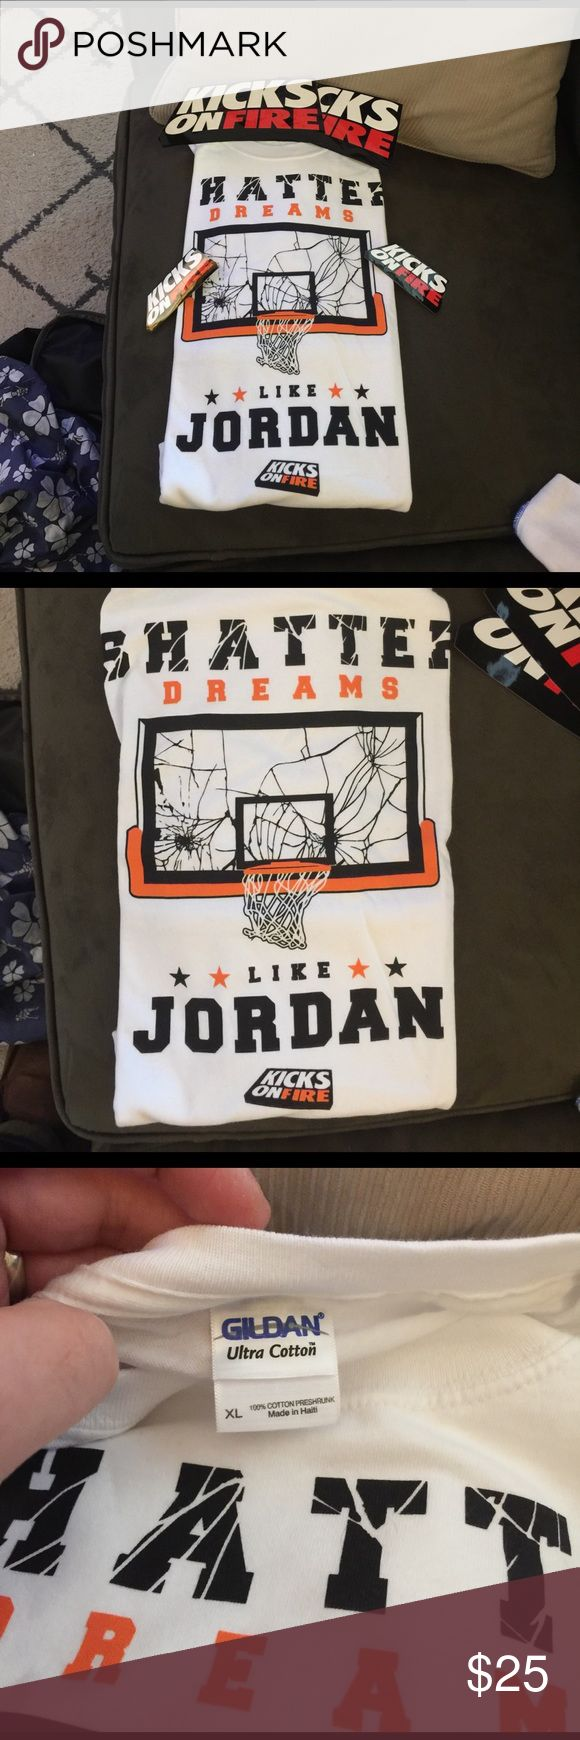 🏀🔥Brand New Super Rare Jordan T-Shirt🔥🏀 Couldn't cop the Shattered Backboard 1's? Want a shirt to rock with them? This is the ultimate for both!!! This is a super rare Kicks on Fire T-shirt that was limited release during the Shattered Backboard 1 release. Shirt is brand new and still factory folded. Shirt comes with 2 small, and 2 large KOF stickers. Make an offer!!! Jordan Shirts Tees - Short Sleeve